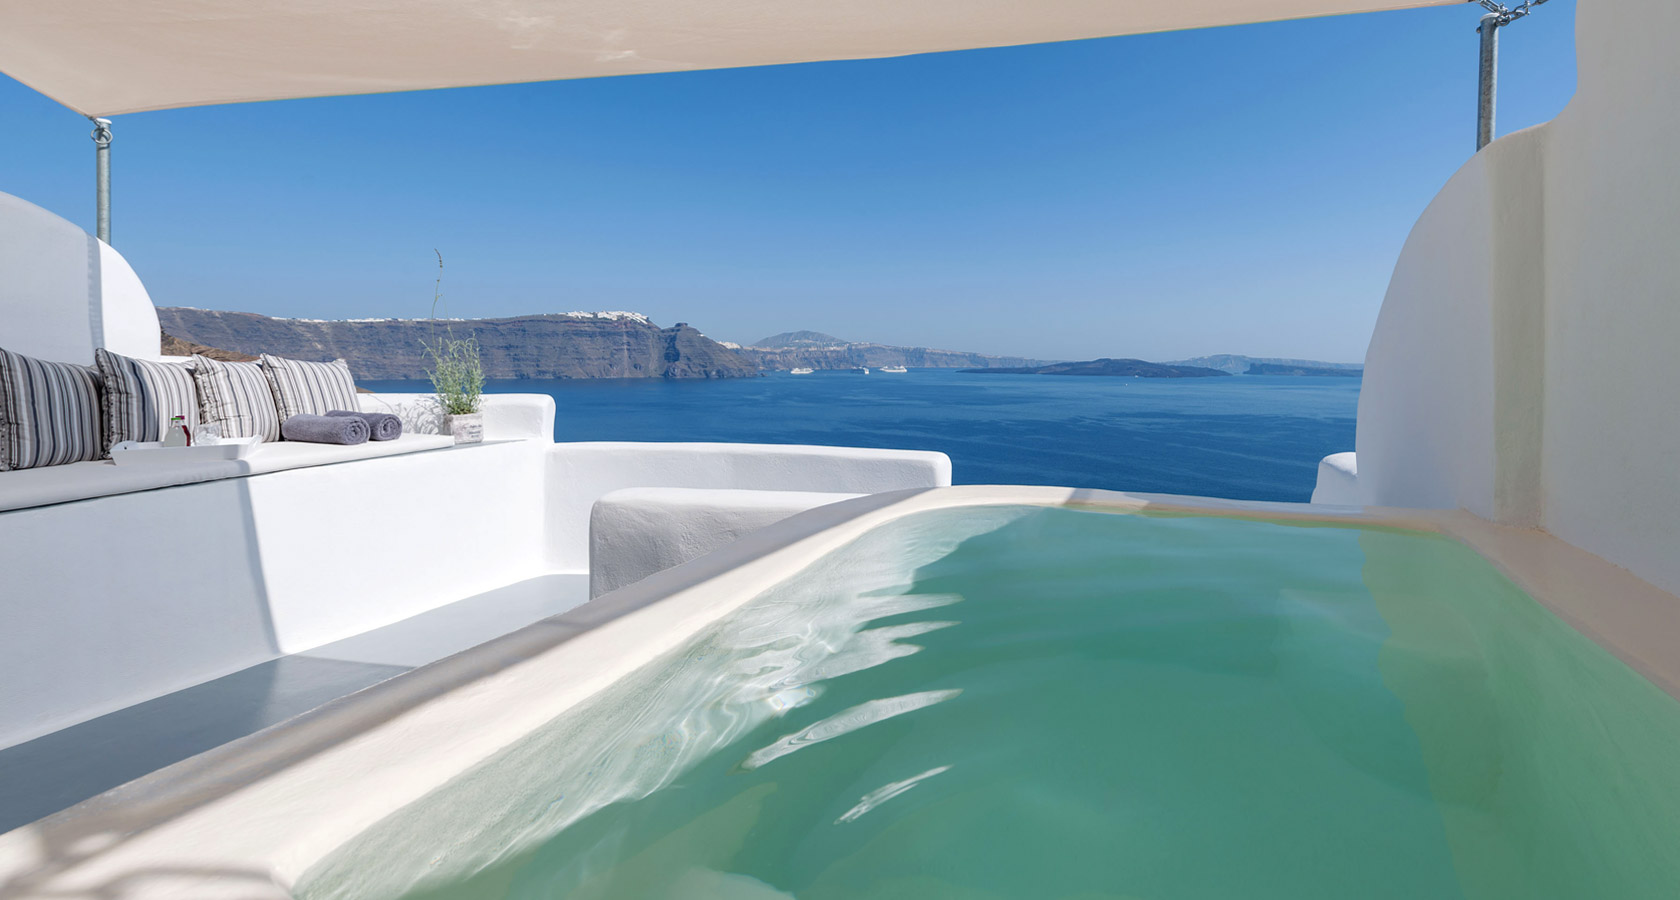 Thirea Suites Oia Santorini – Sea view from the balcony